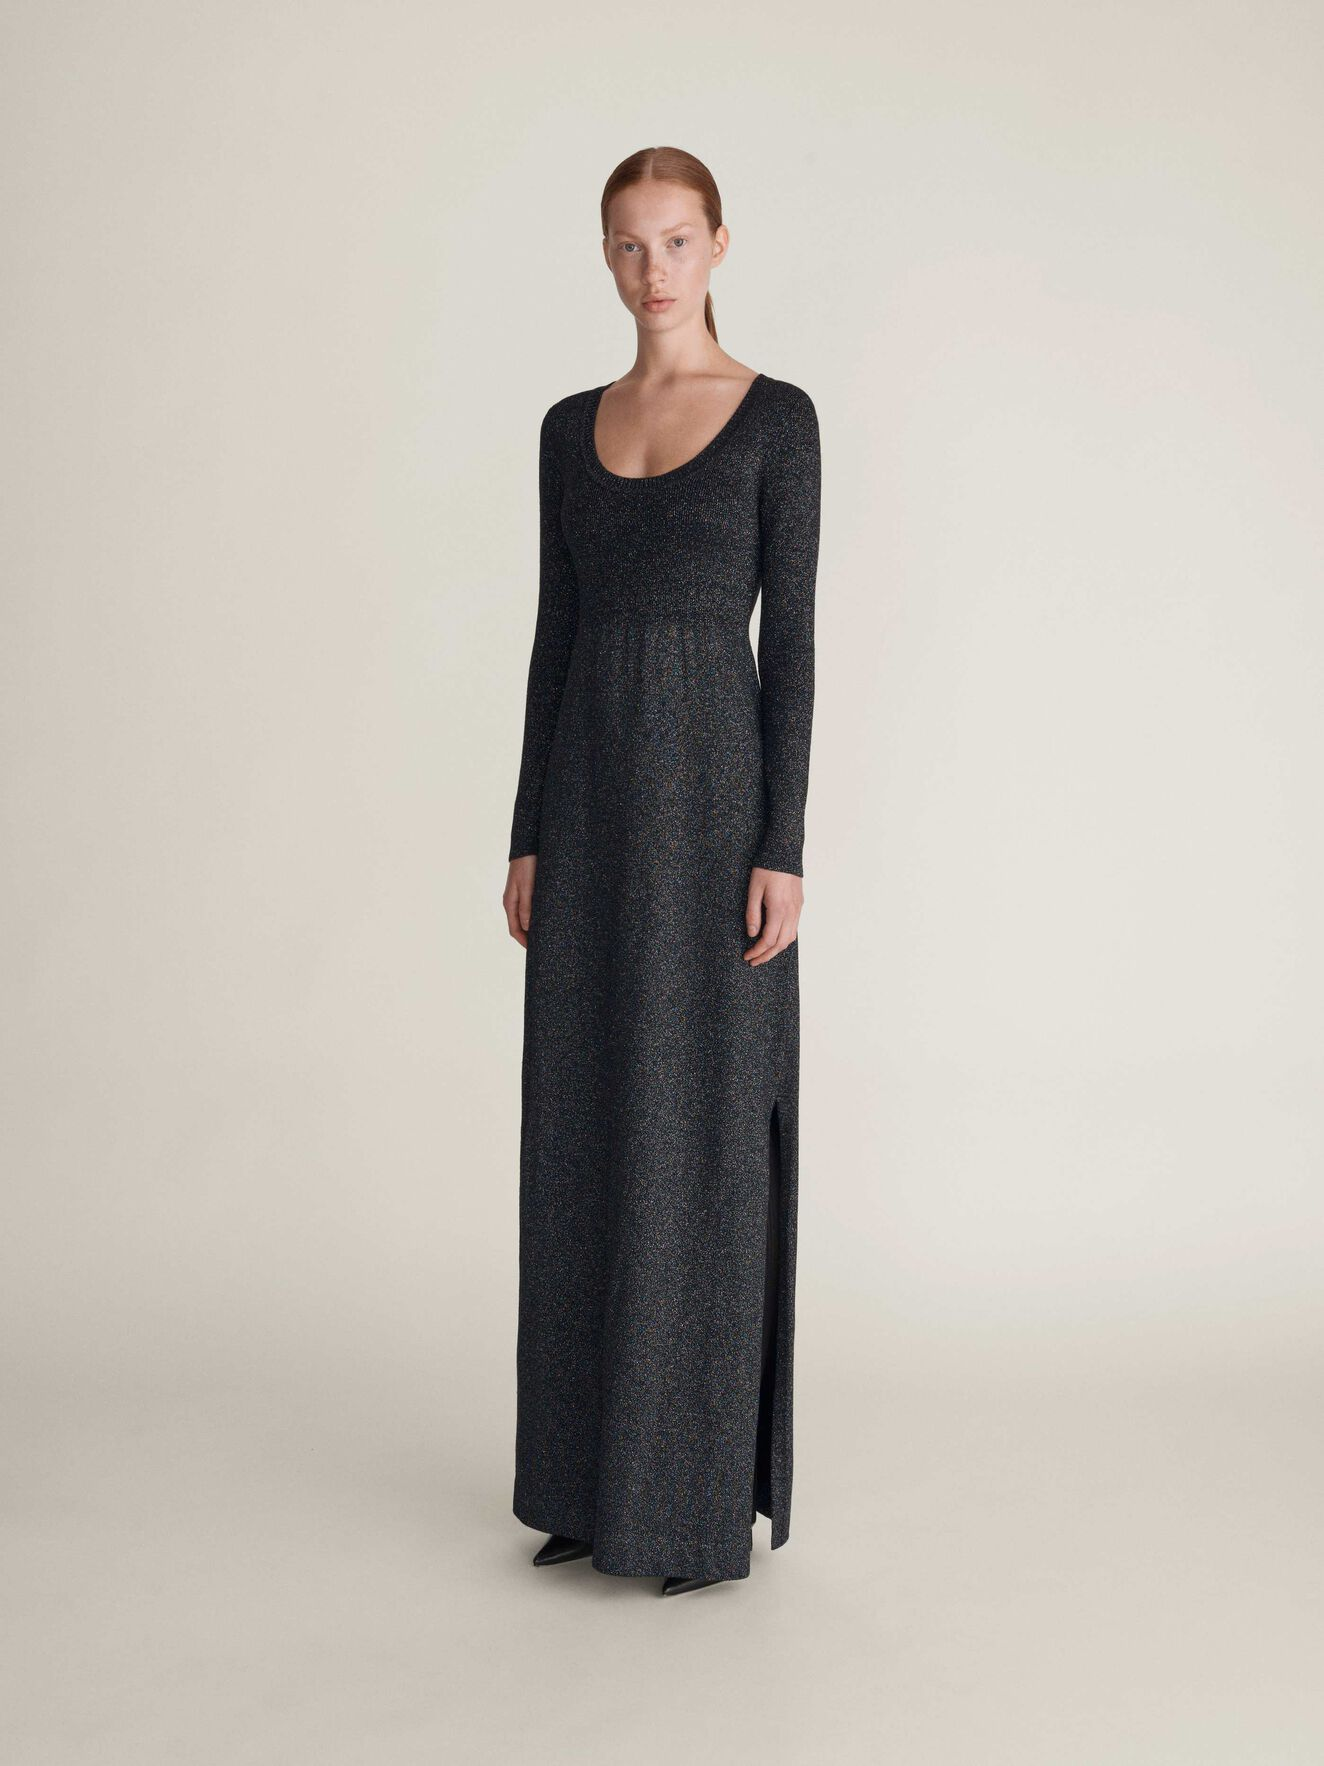 Crux Dress in Midnight Black from Tiger of Sweden